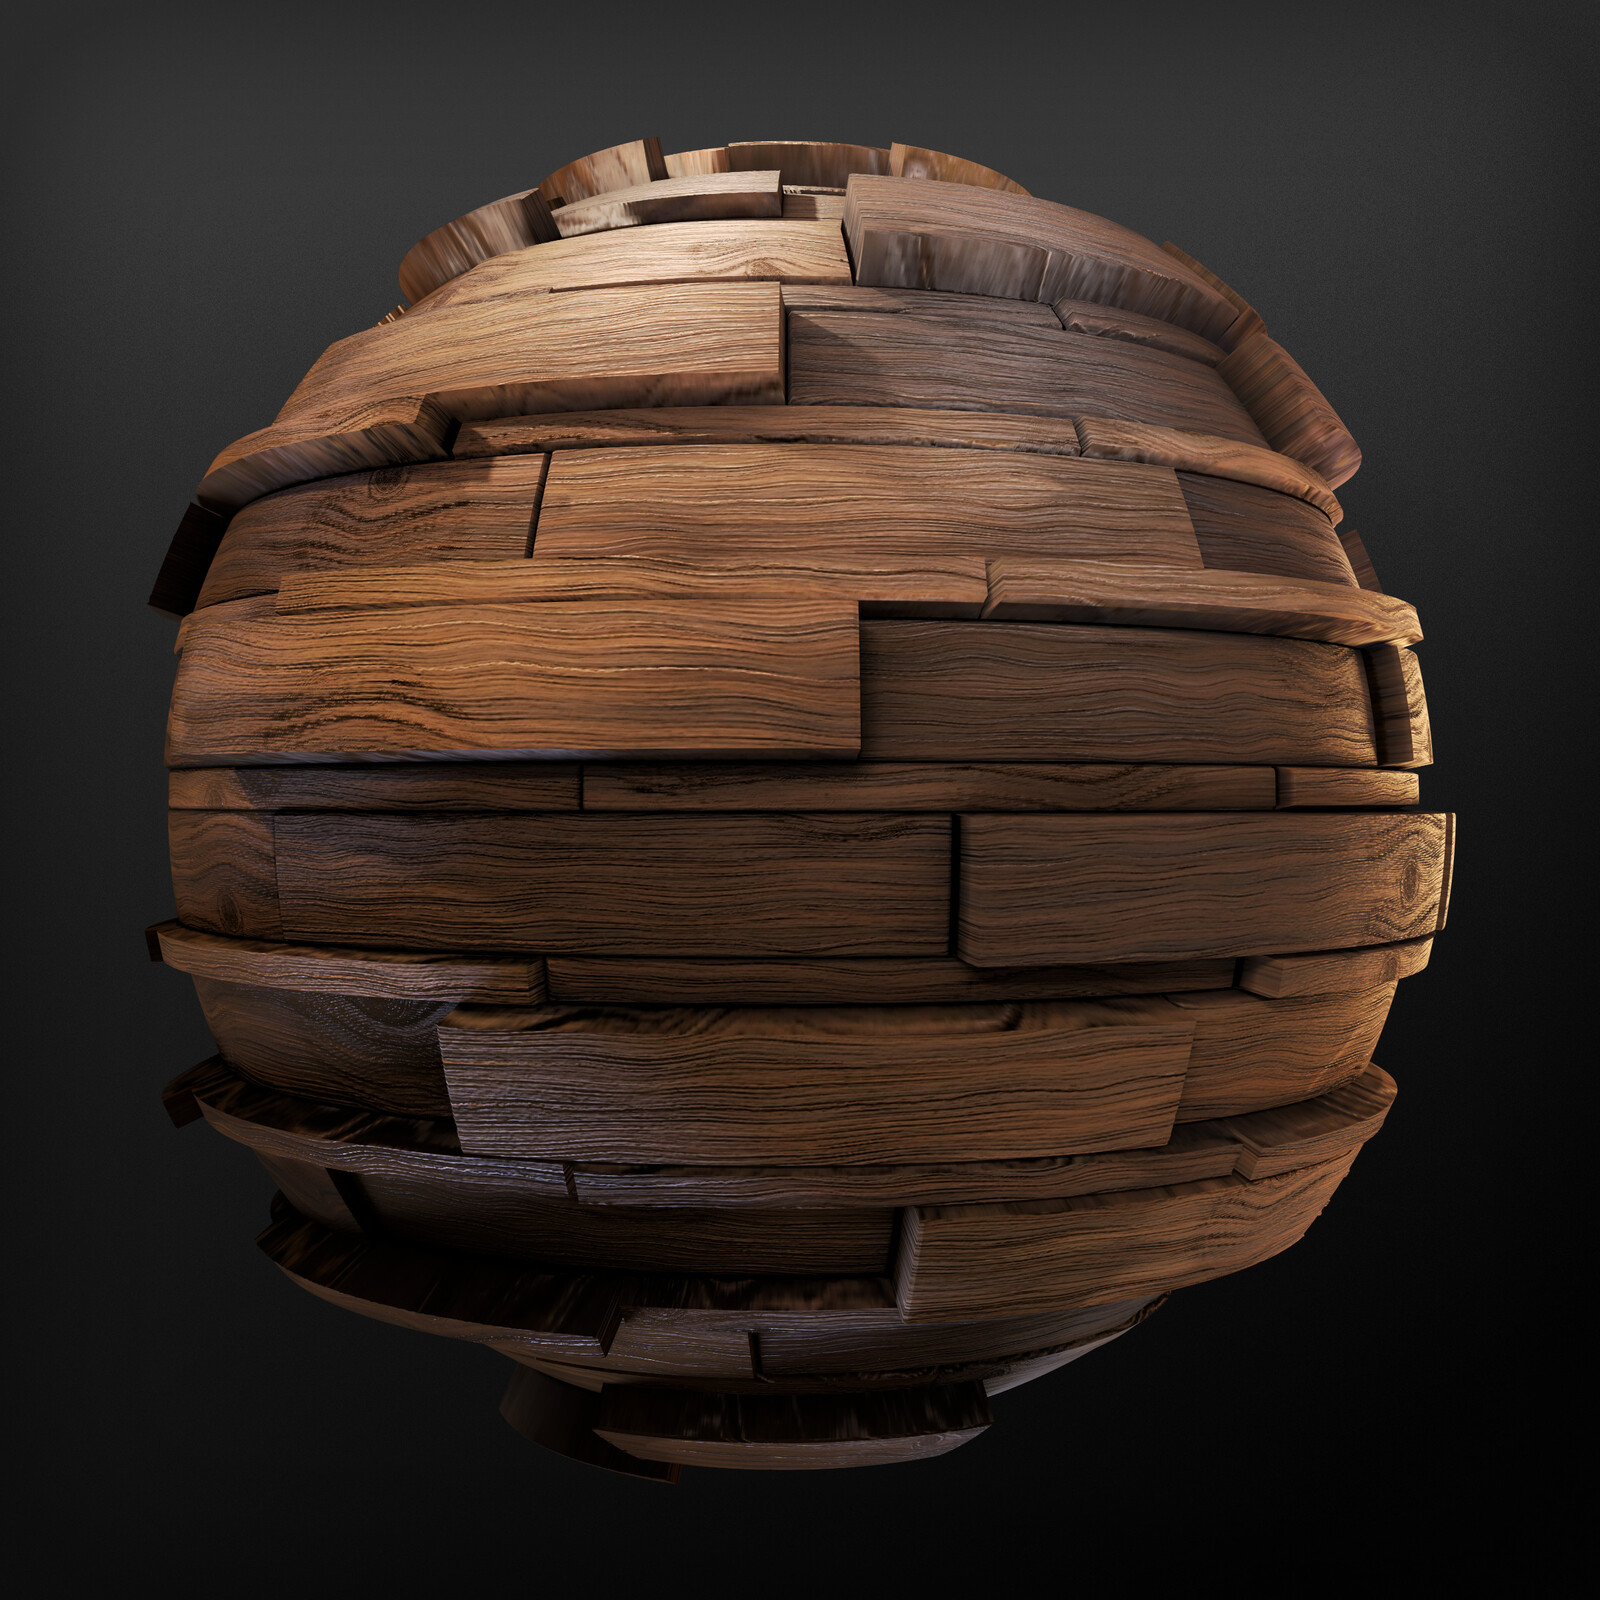 Architectural Wood - Substance Material